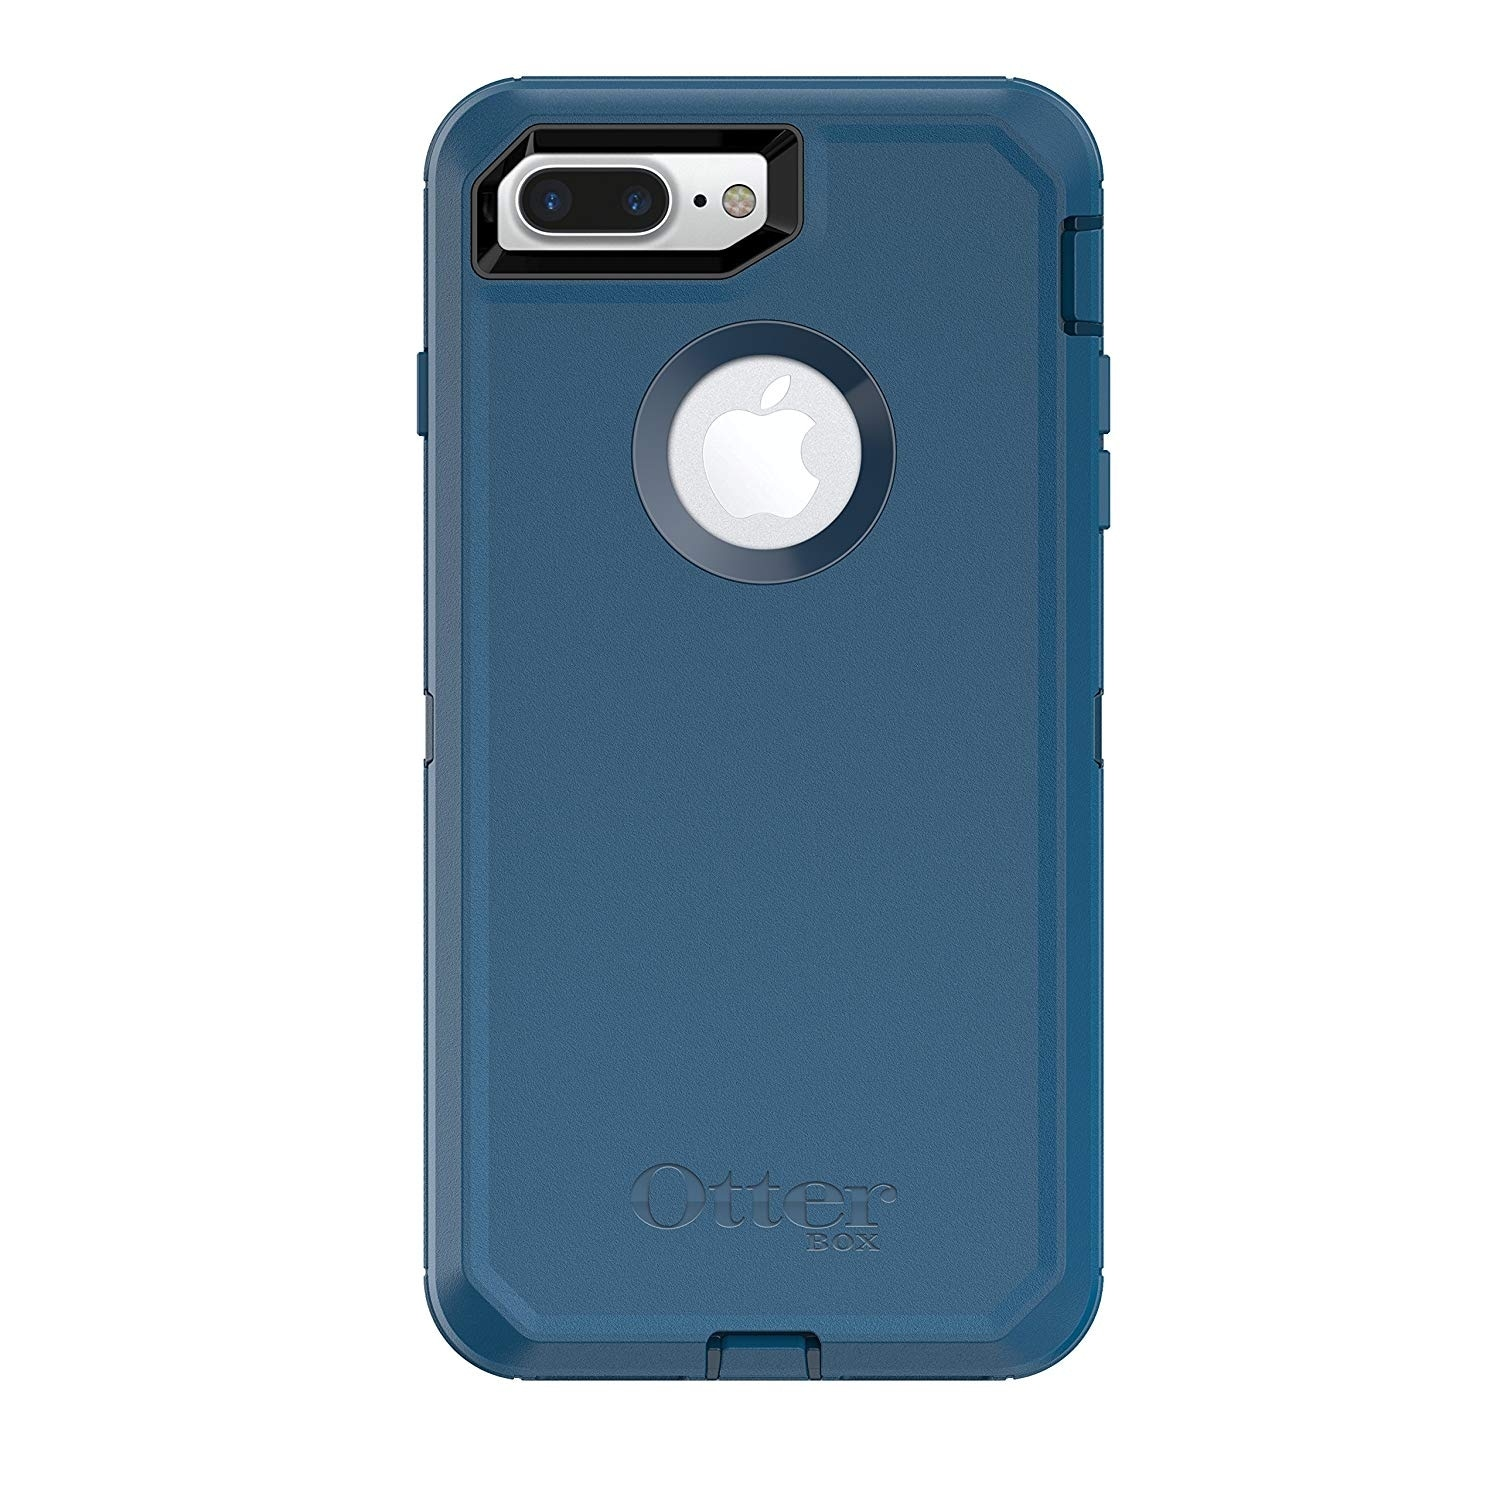 cheap for discount f37d3 023ff OtterBox Defender Case for iPhone 8 PLUS & iPhone 7 PLUS (No Clip) -  Bespoke Way - Bespoke Way